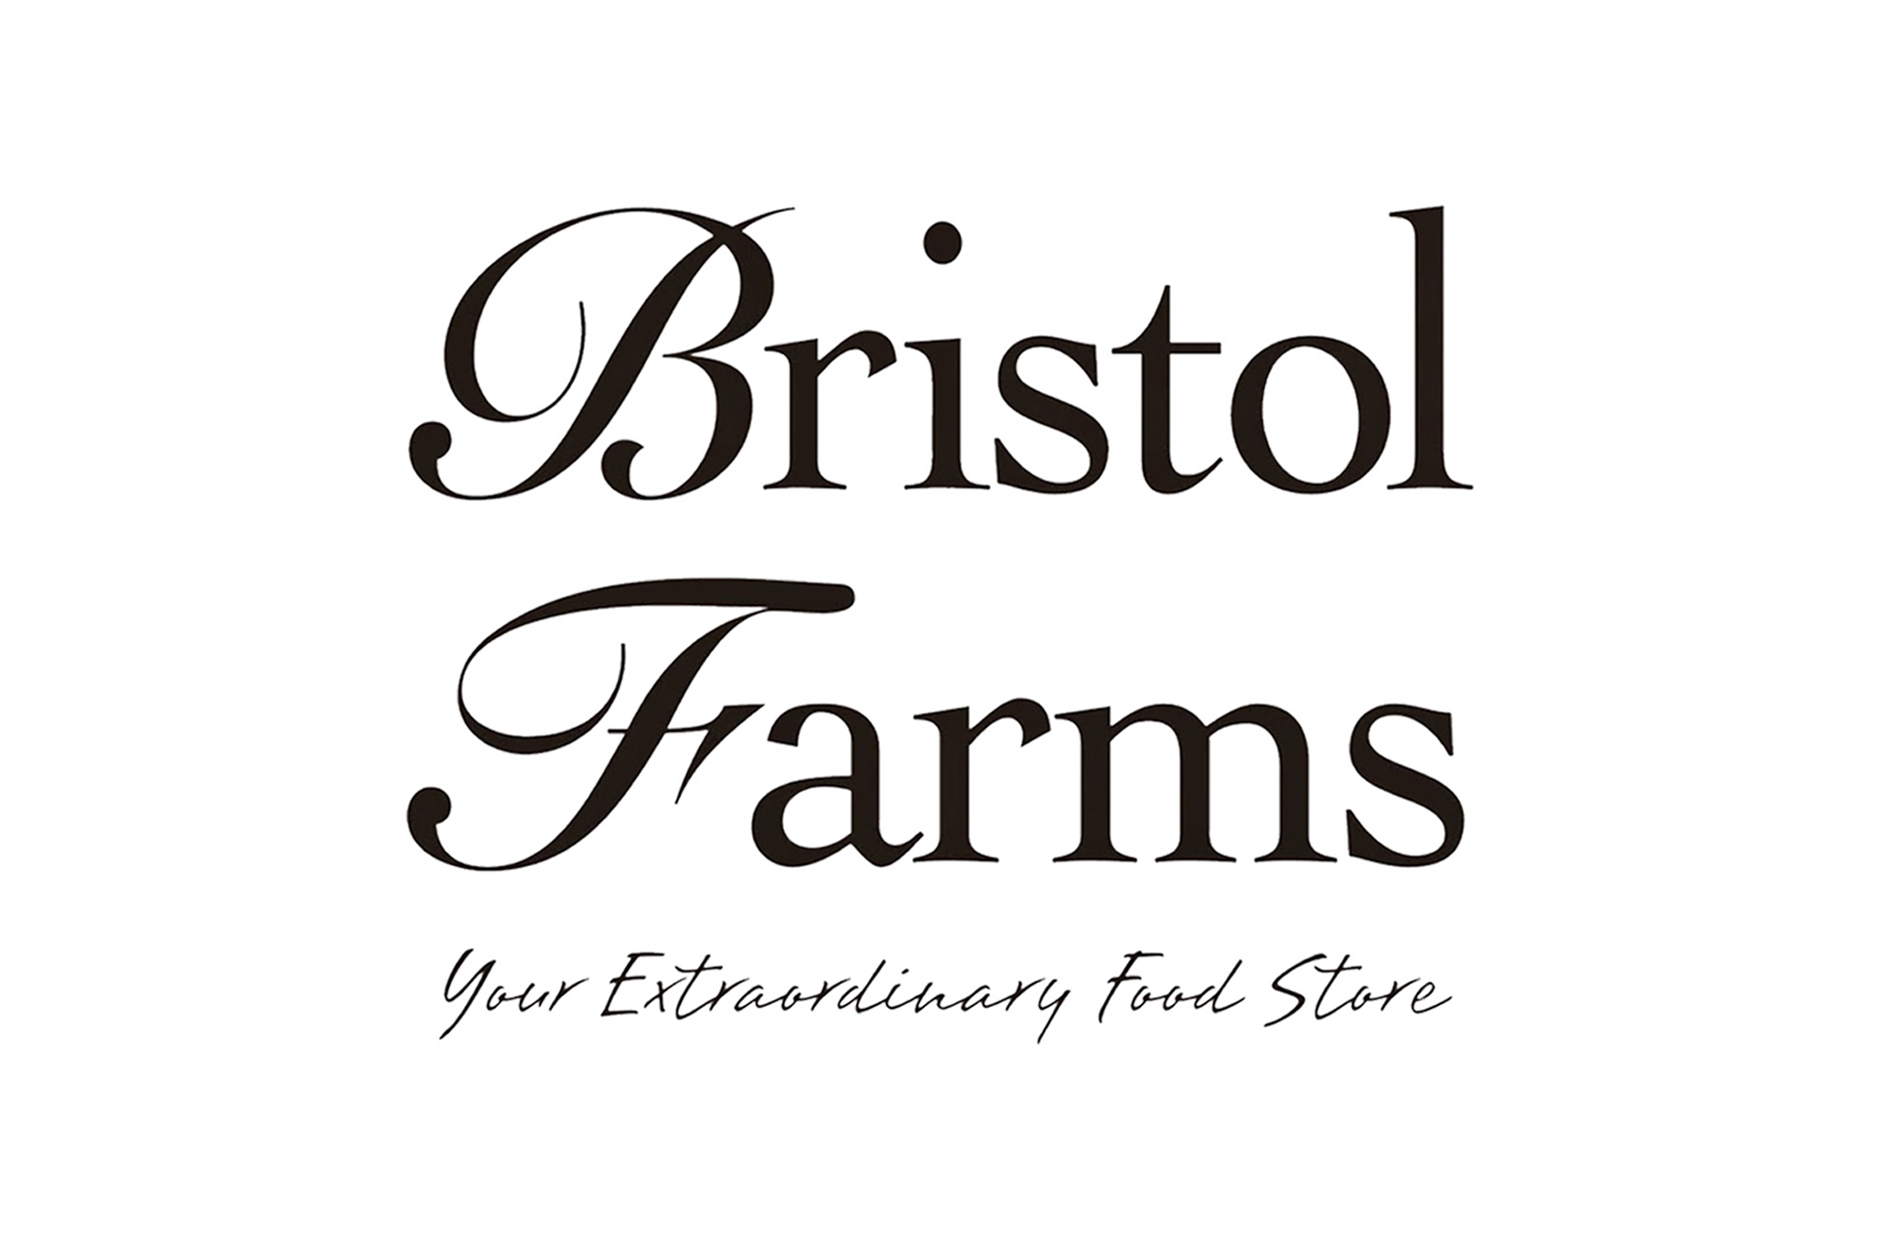 Nuna Bristol Farms+.jpg